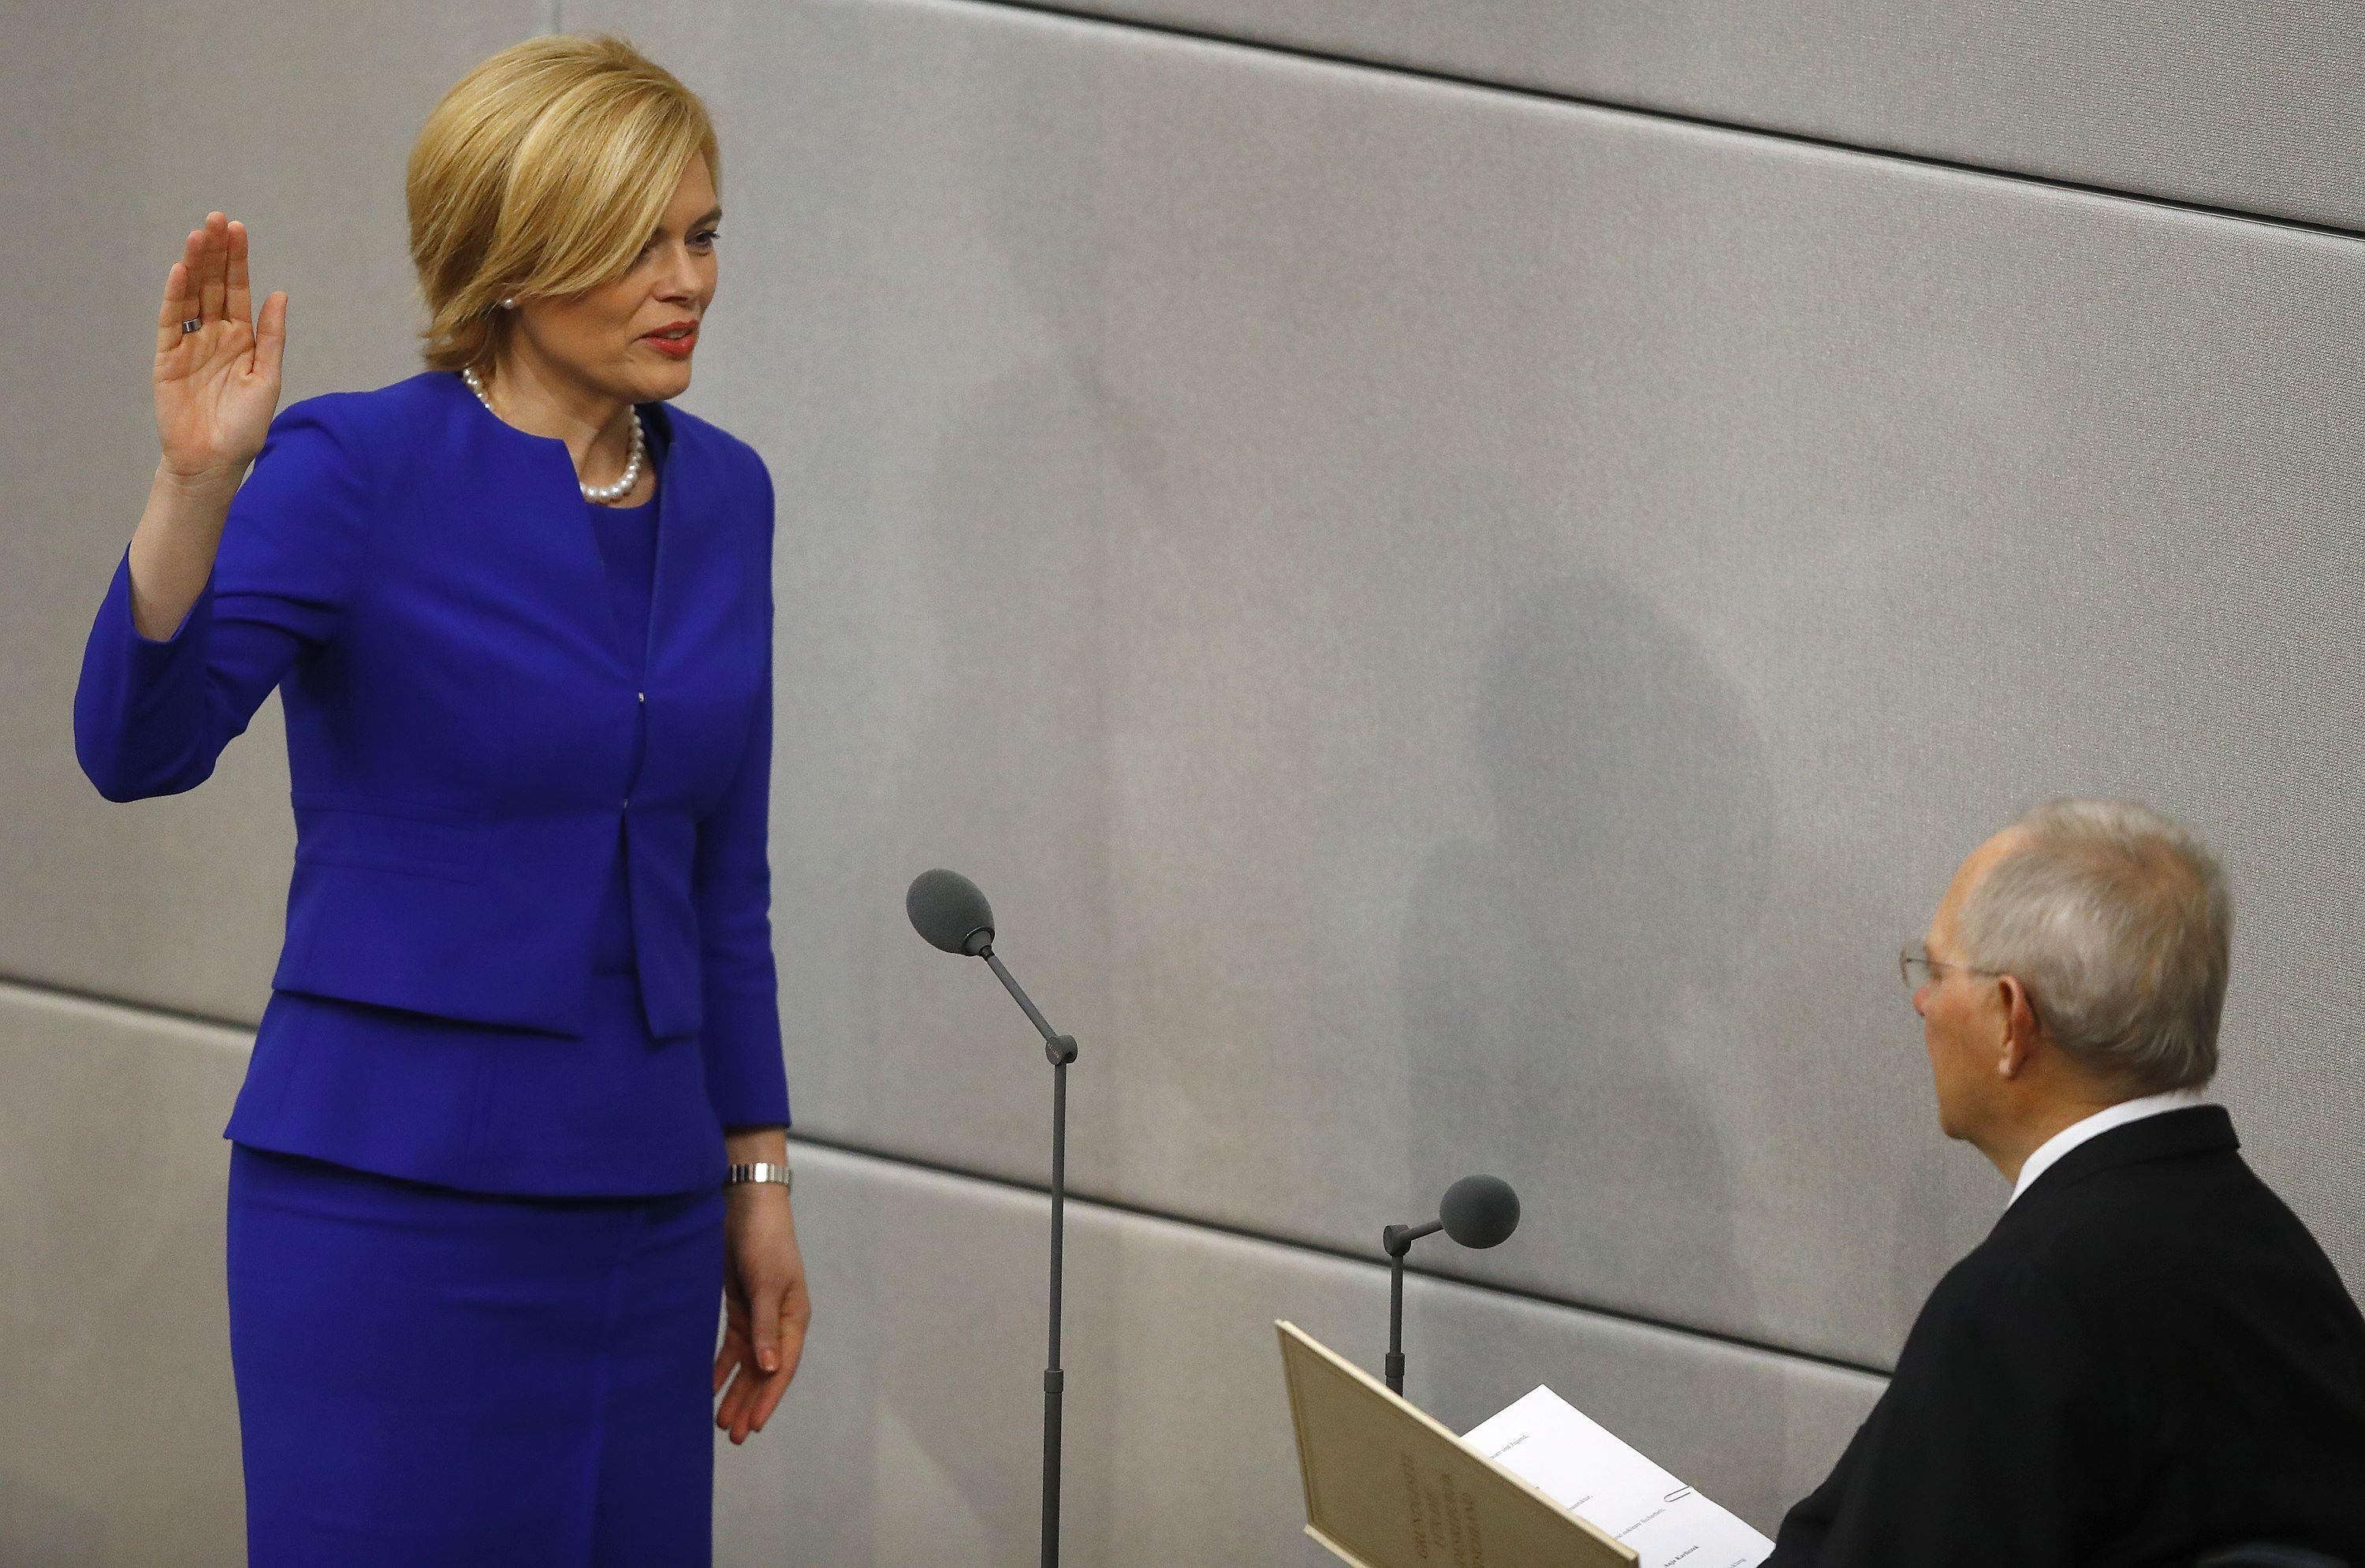 Julia Kloeckner takes over as German farm minister in new government